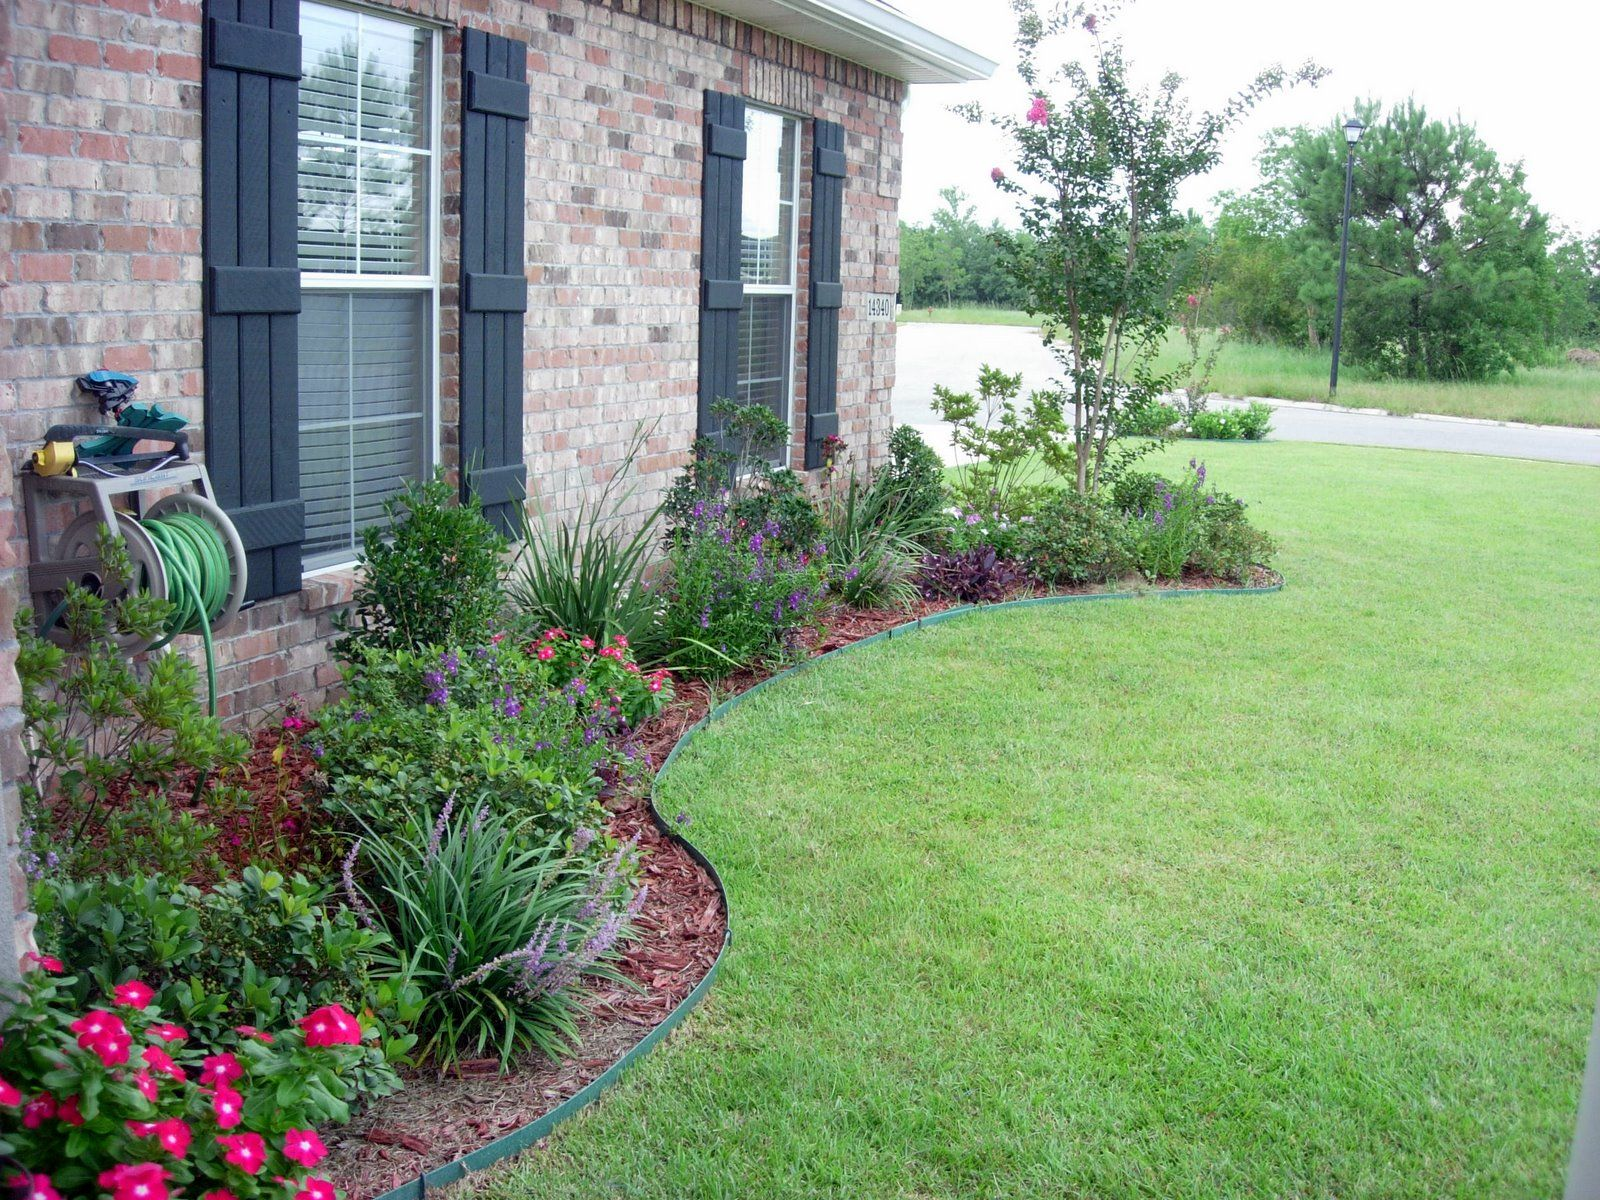 flower bed designs for front of house  Use shrubs  small trees to form the  structure of your front yard. flower bed designs for front of house   Use shrubs  small trees to